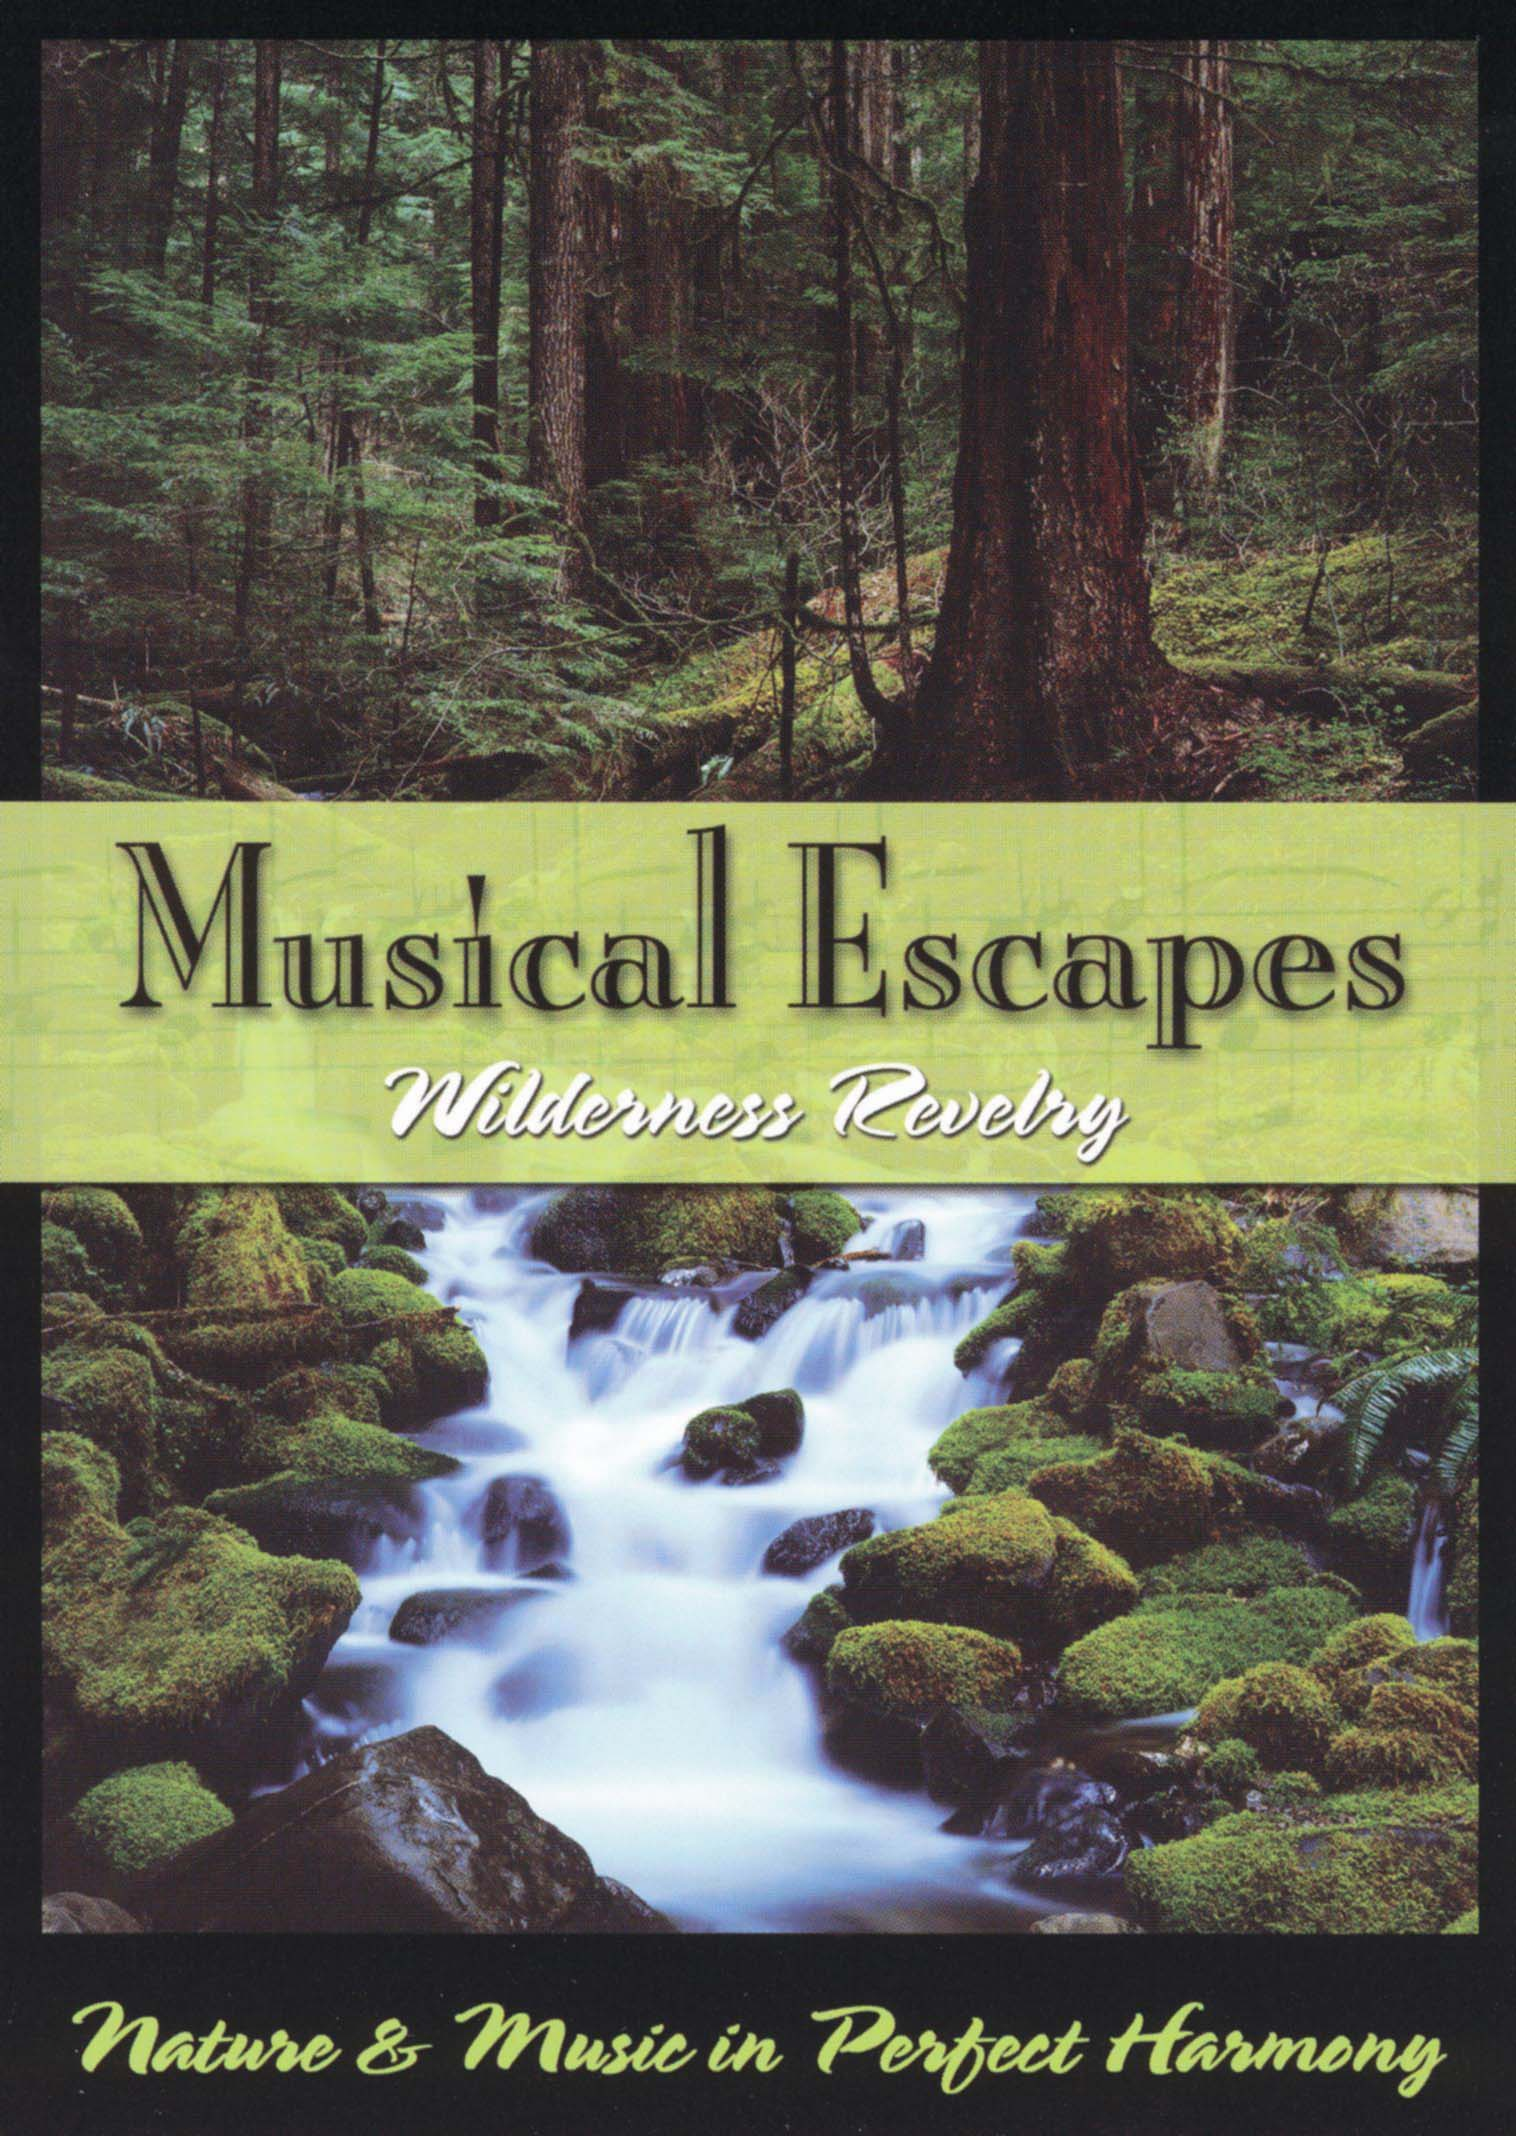 Musical Escapes, Vol. 2: Wilderness Revery